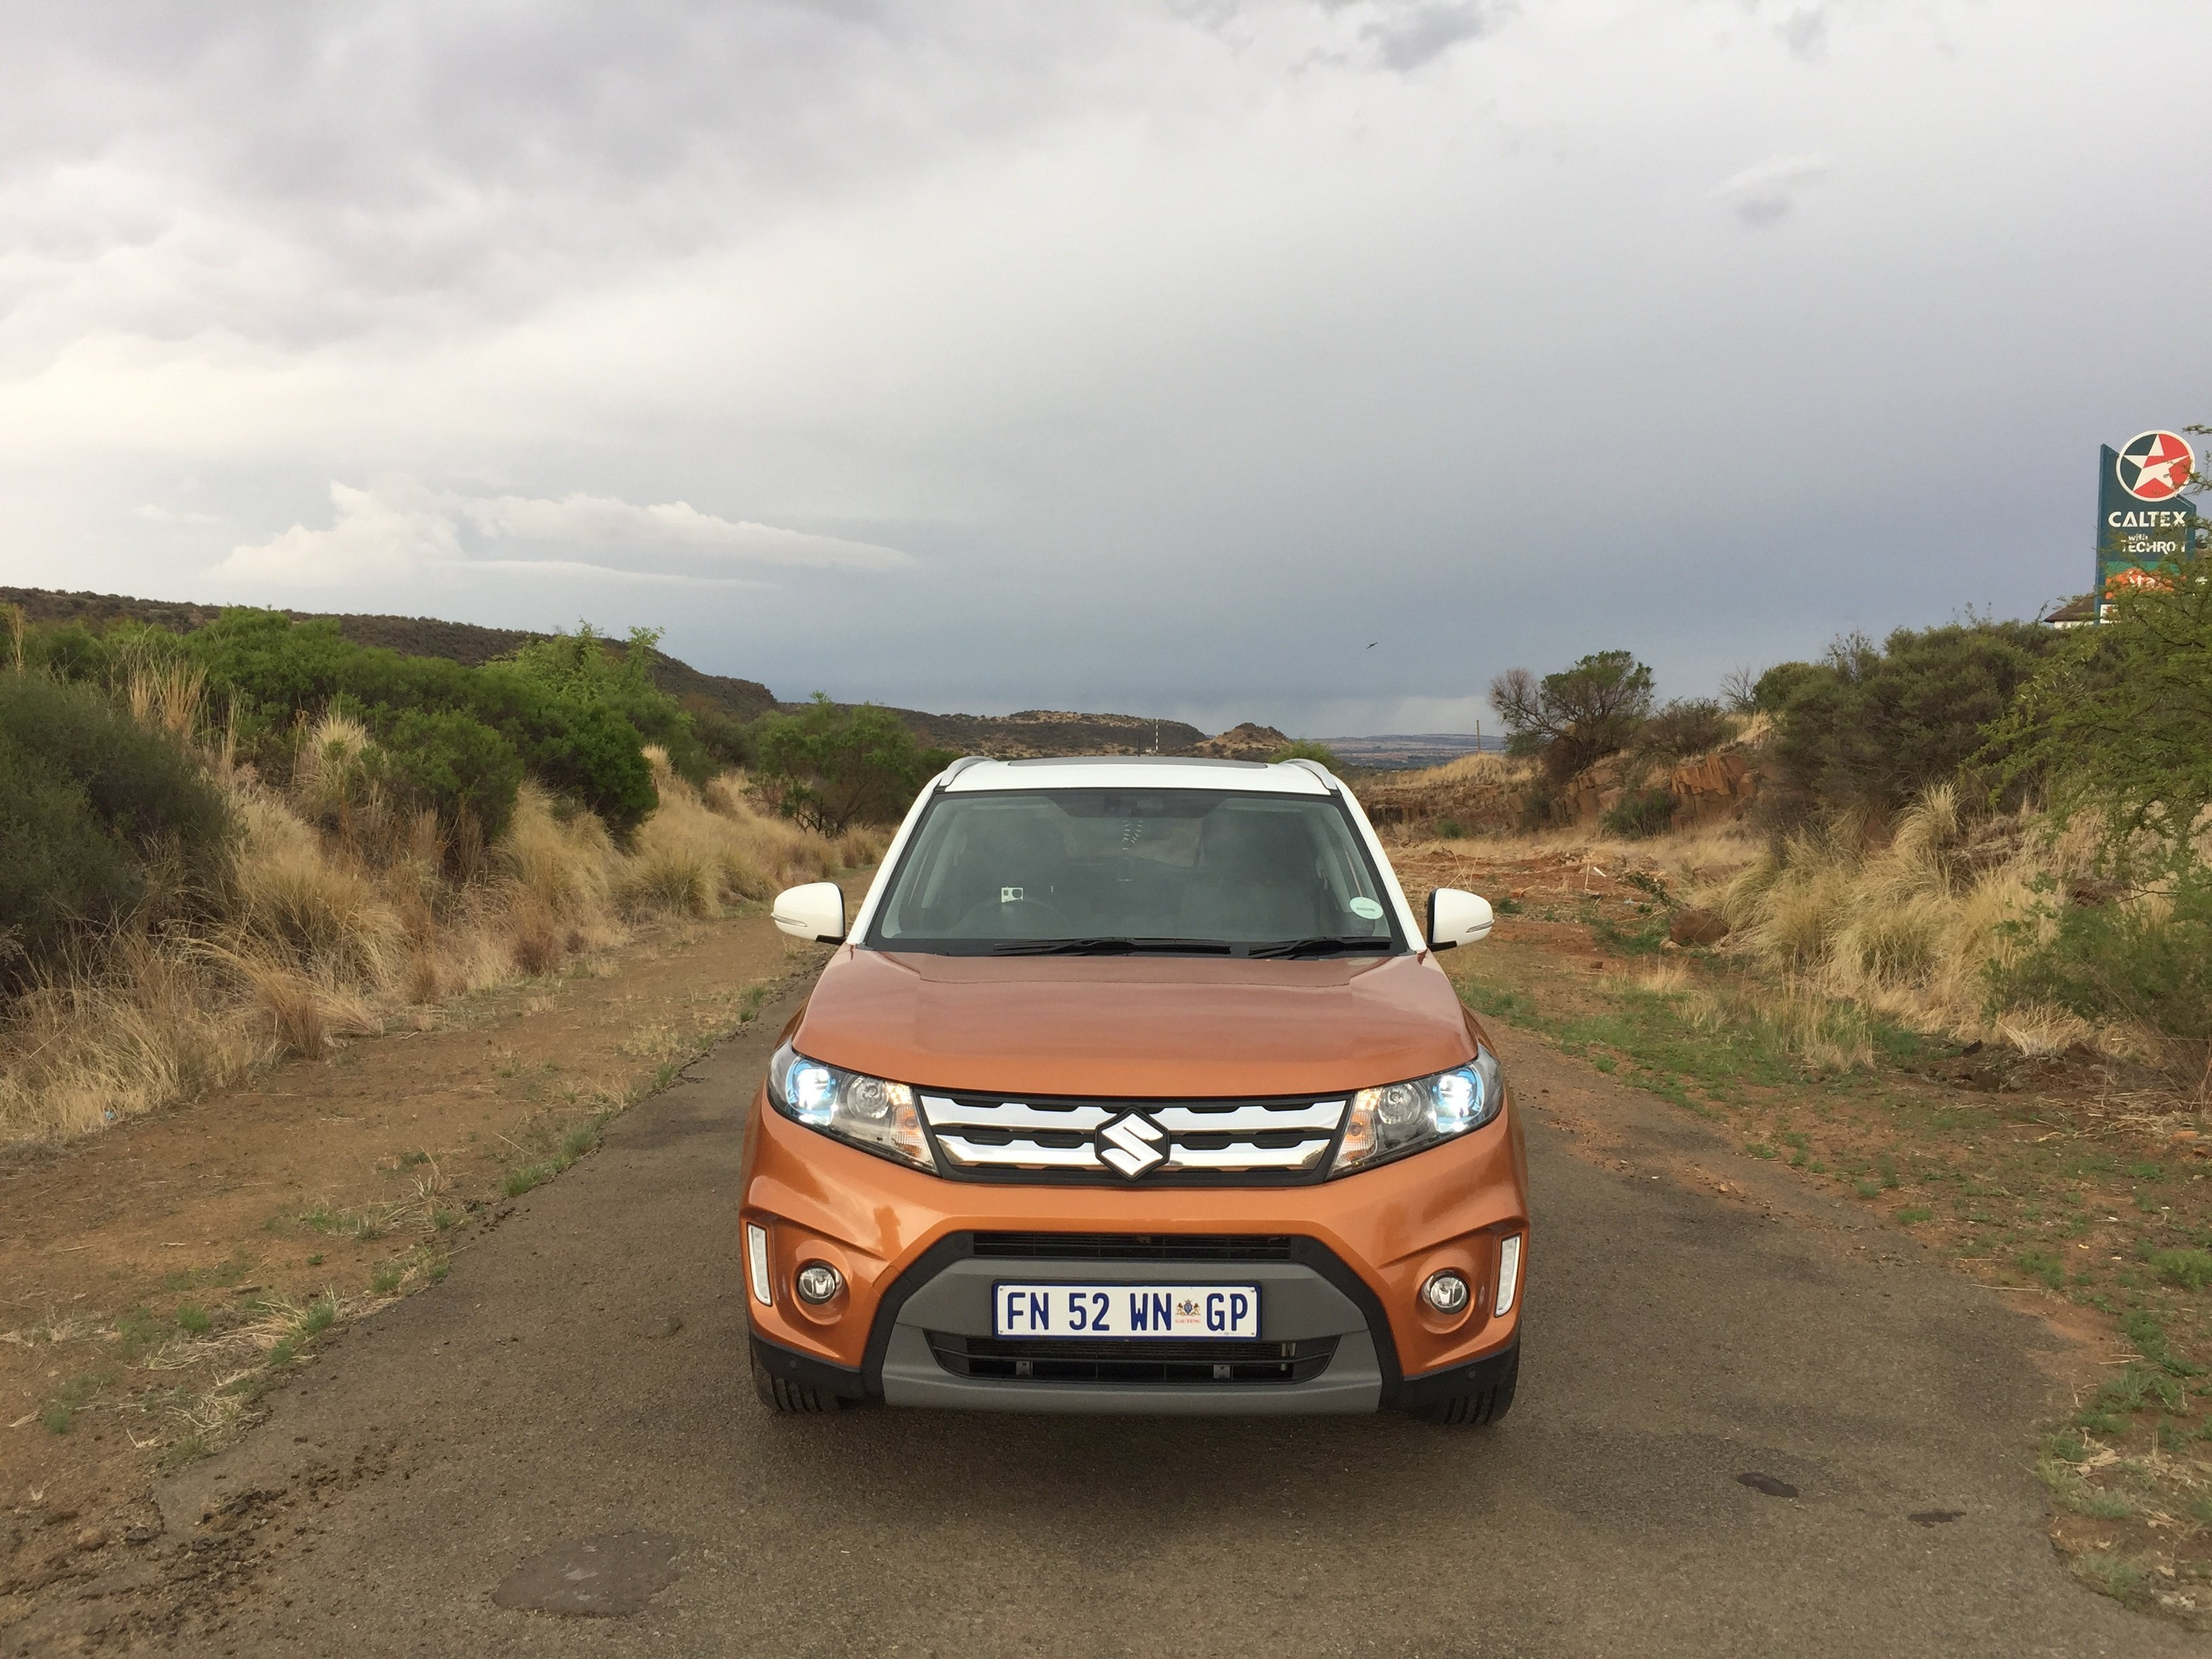 Epic Sports Road Trips - The Cape Town 7s in the Suzuki Vitara.